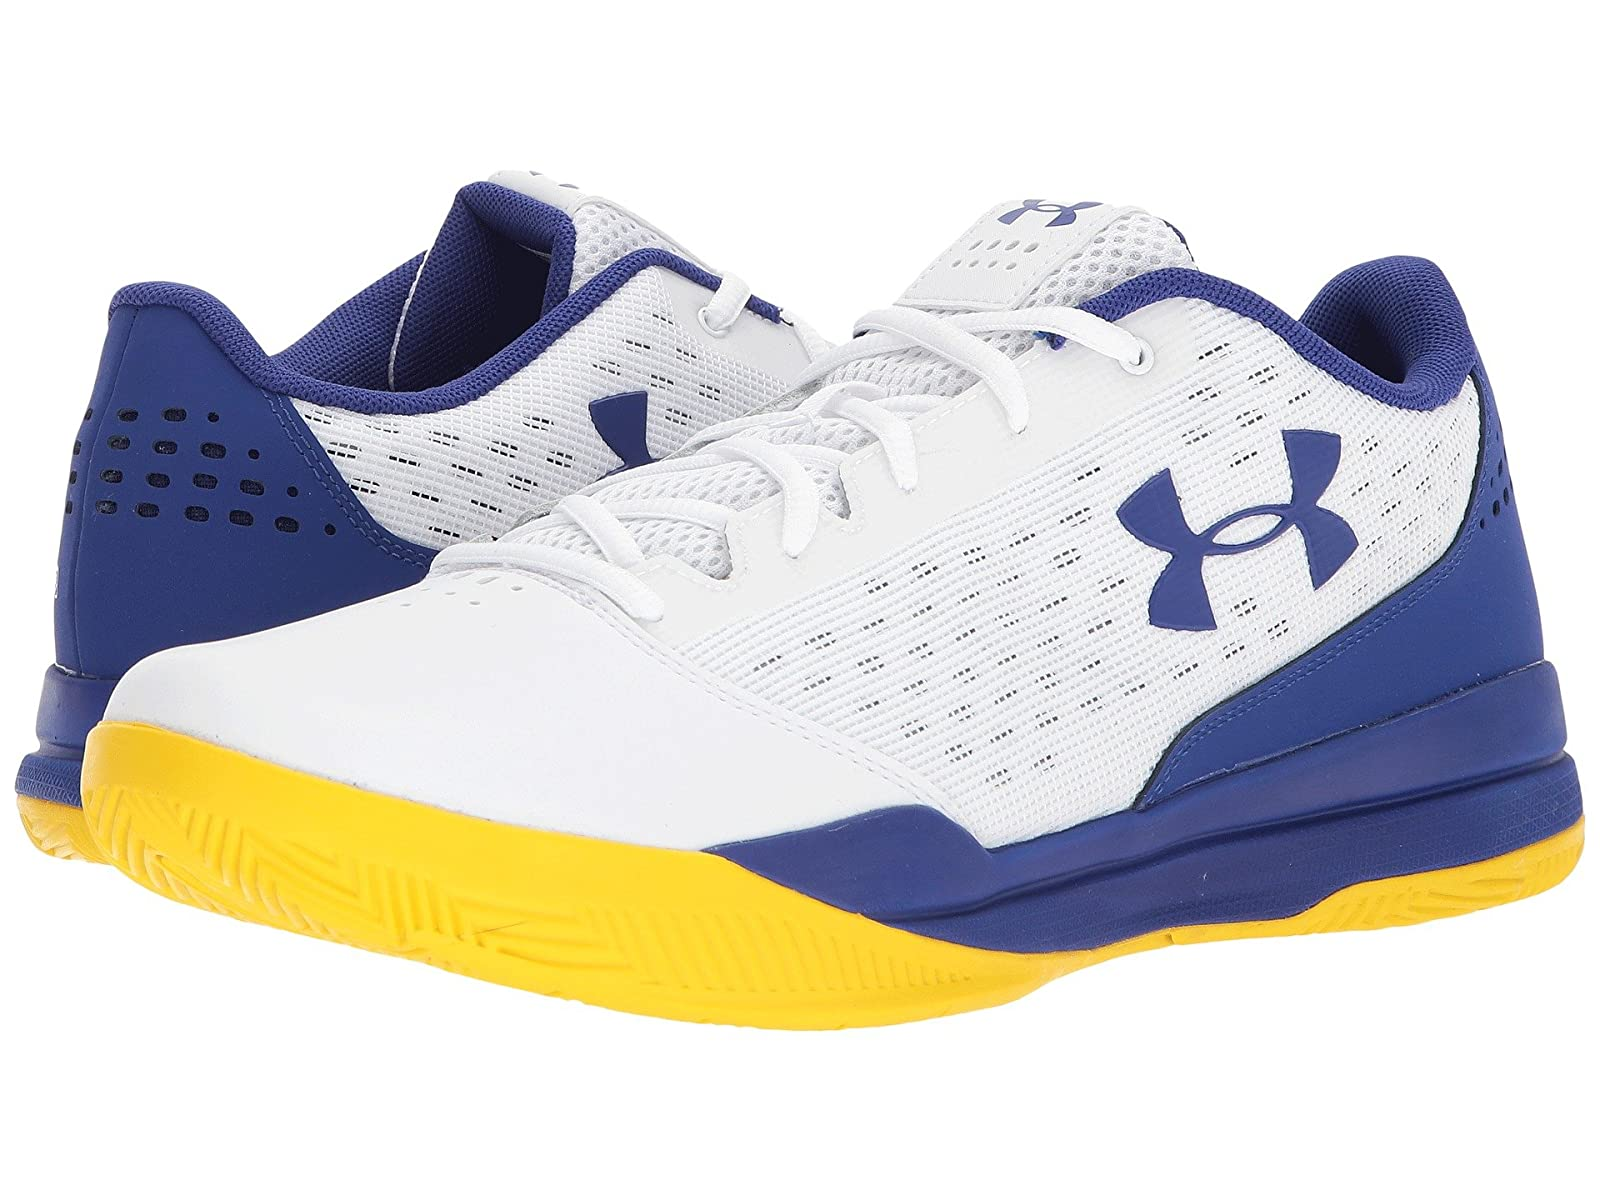 Under Armour UA Jet LowCheap and distinctive eye-catching shoes